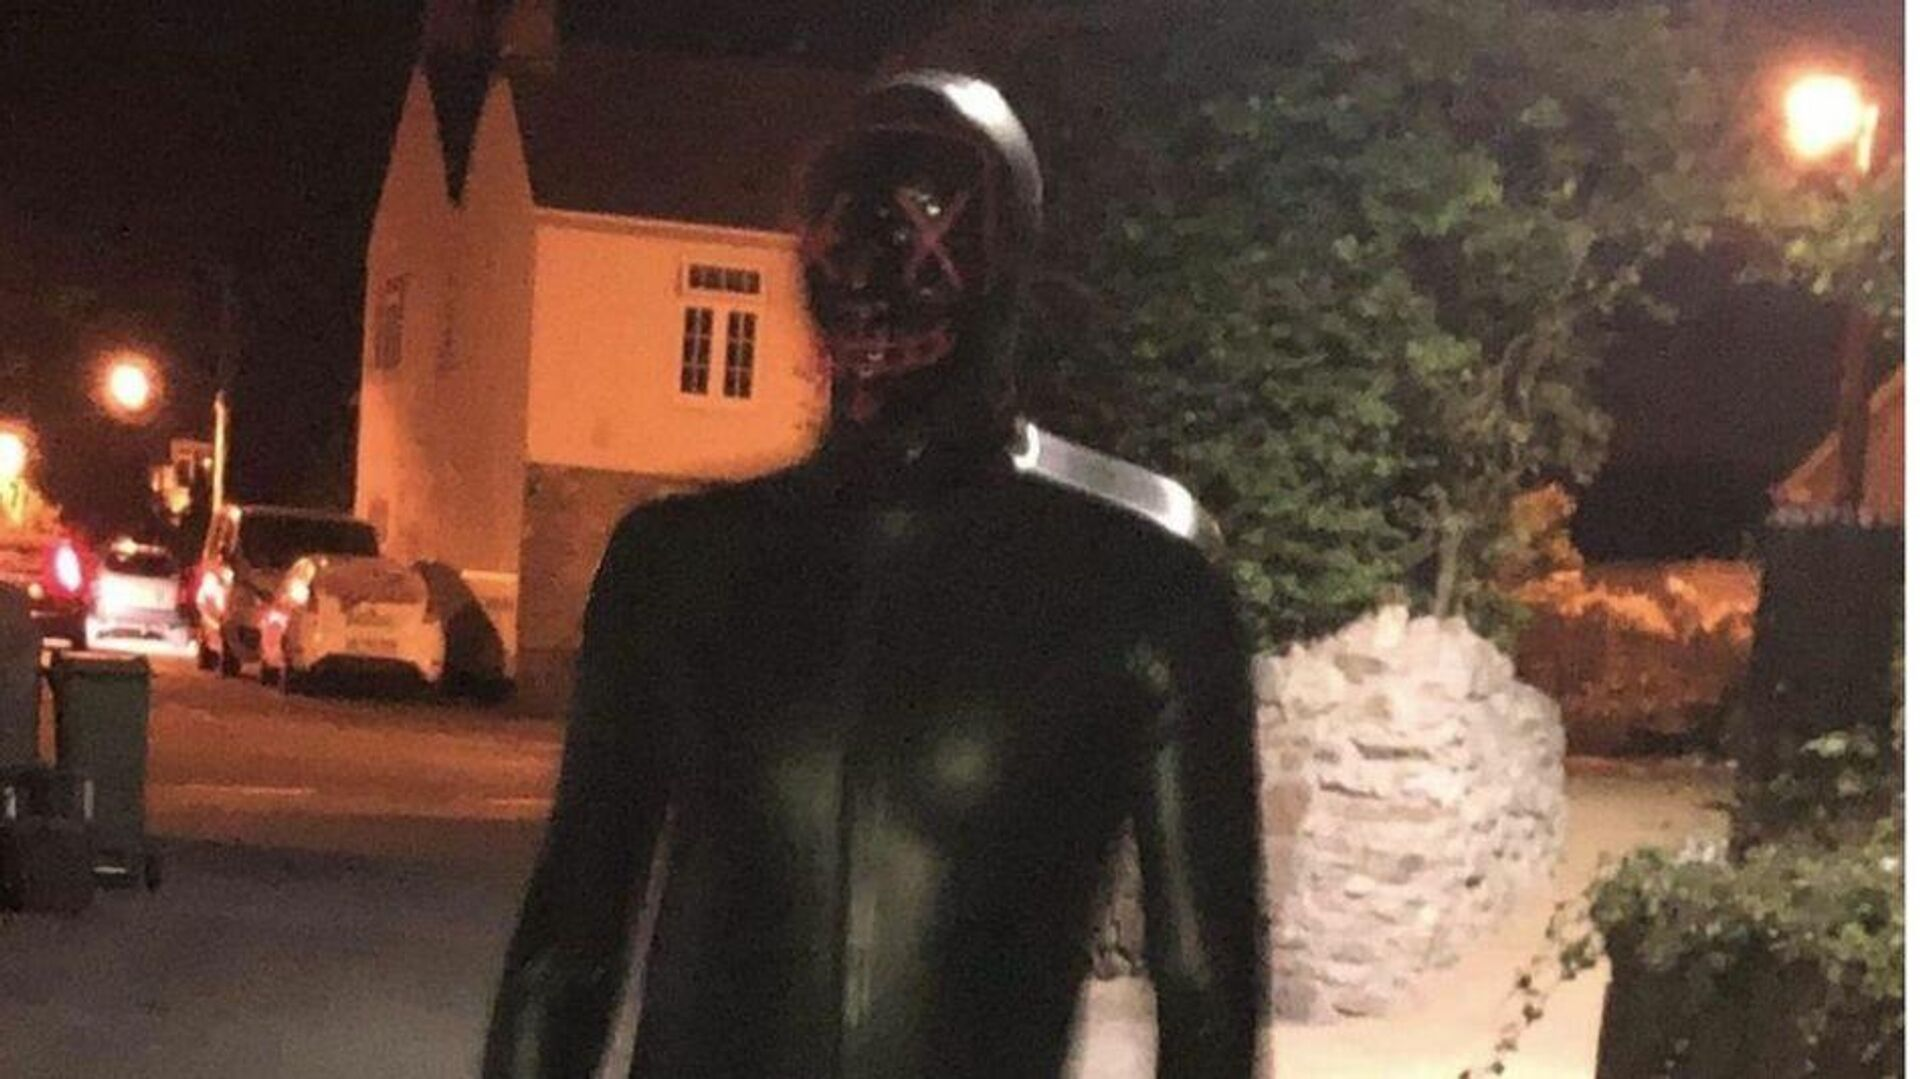 An alleged photo of a gimp man who stalked residents of West Country, UK at nights taken in 2019. - Sputnik International, 1920, 12.09.2021